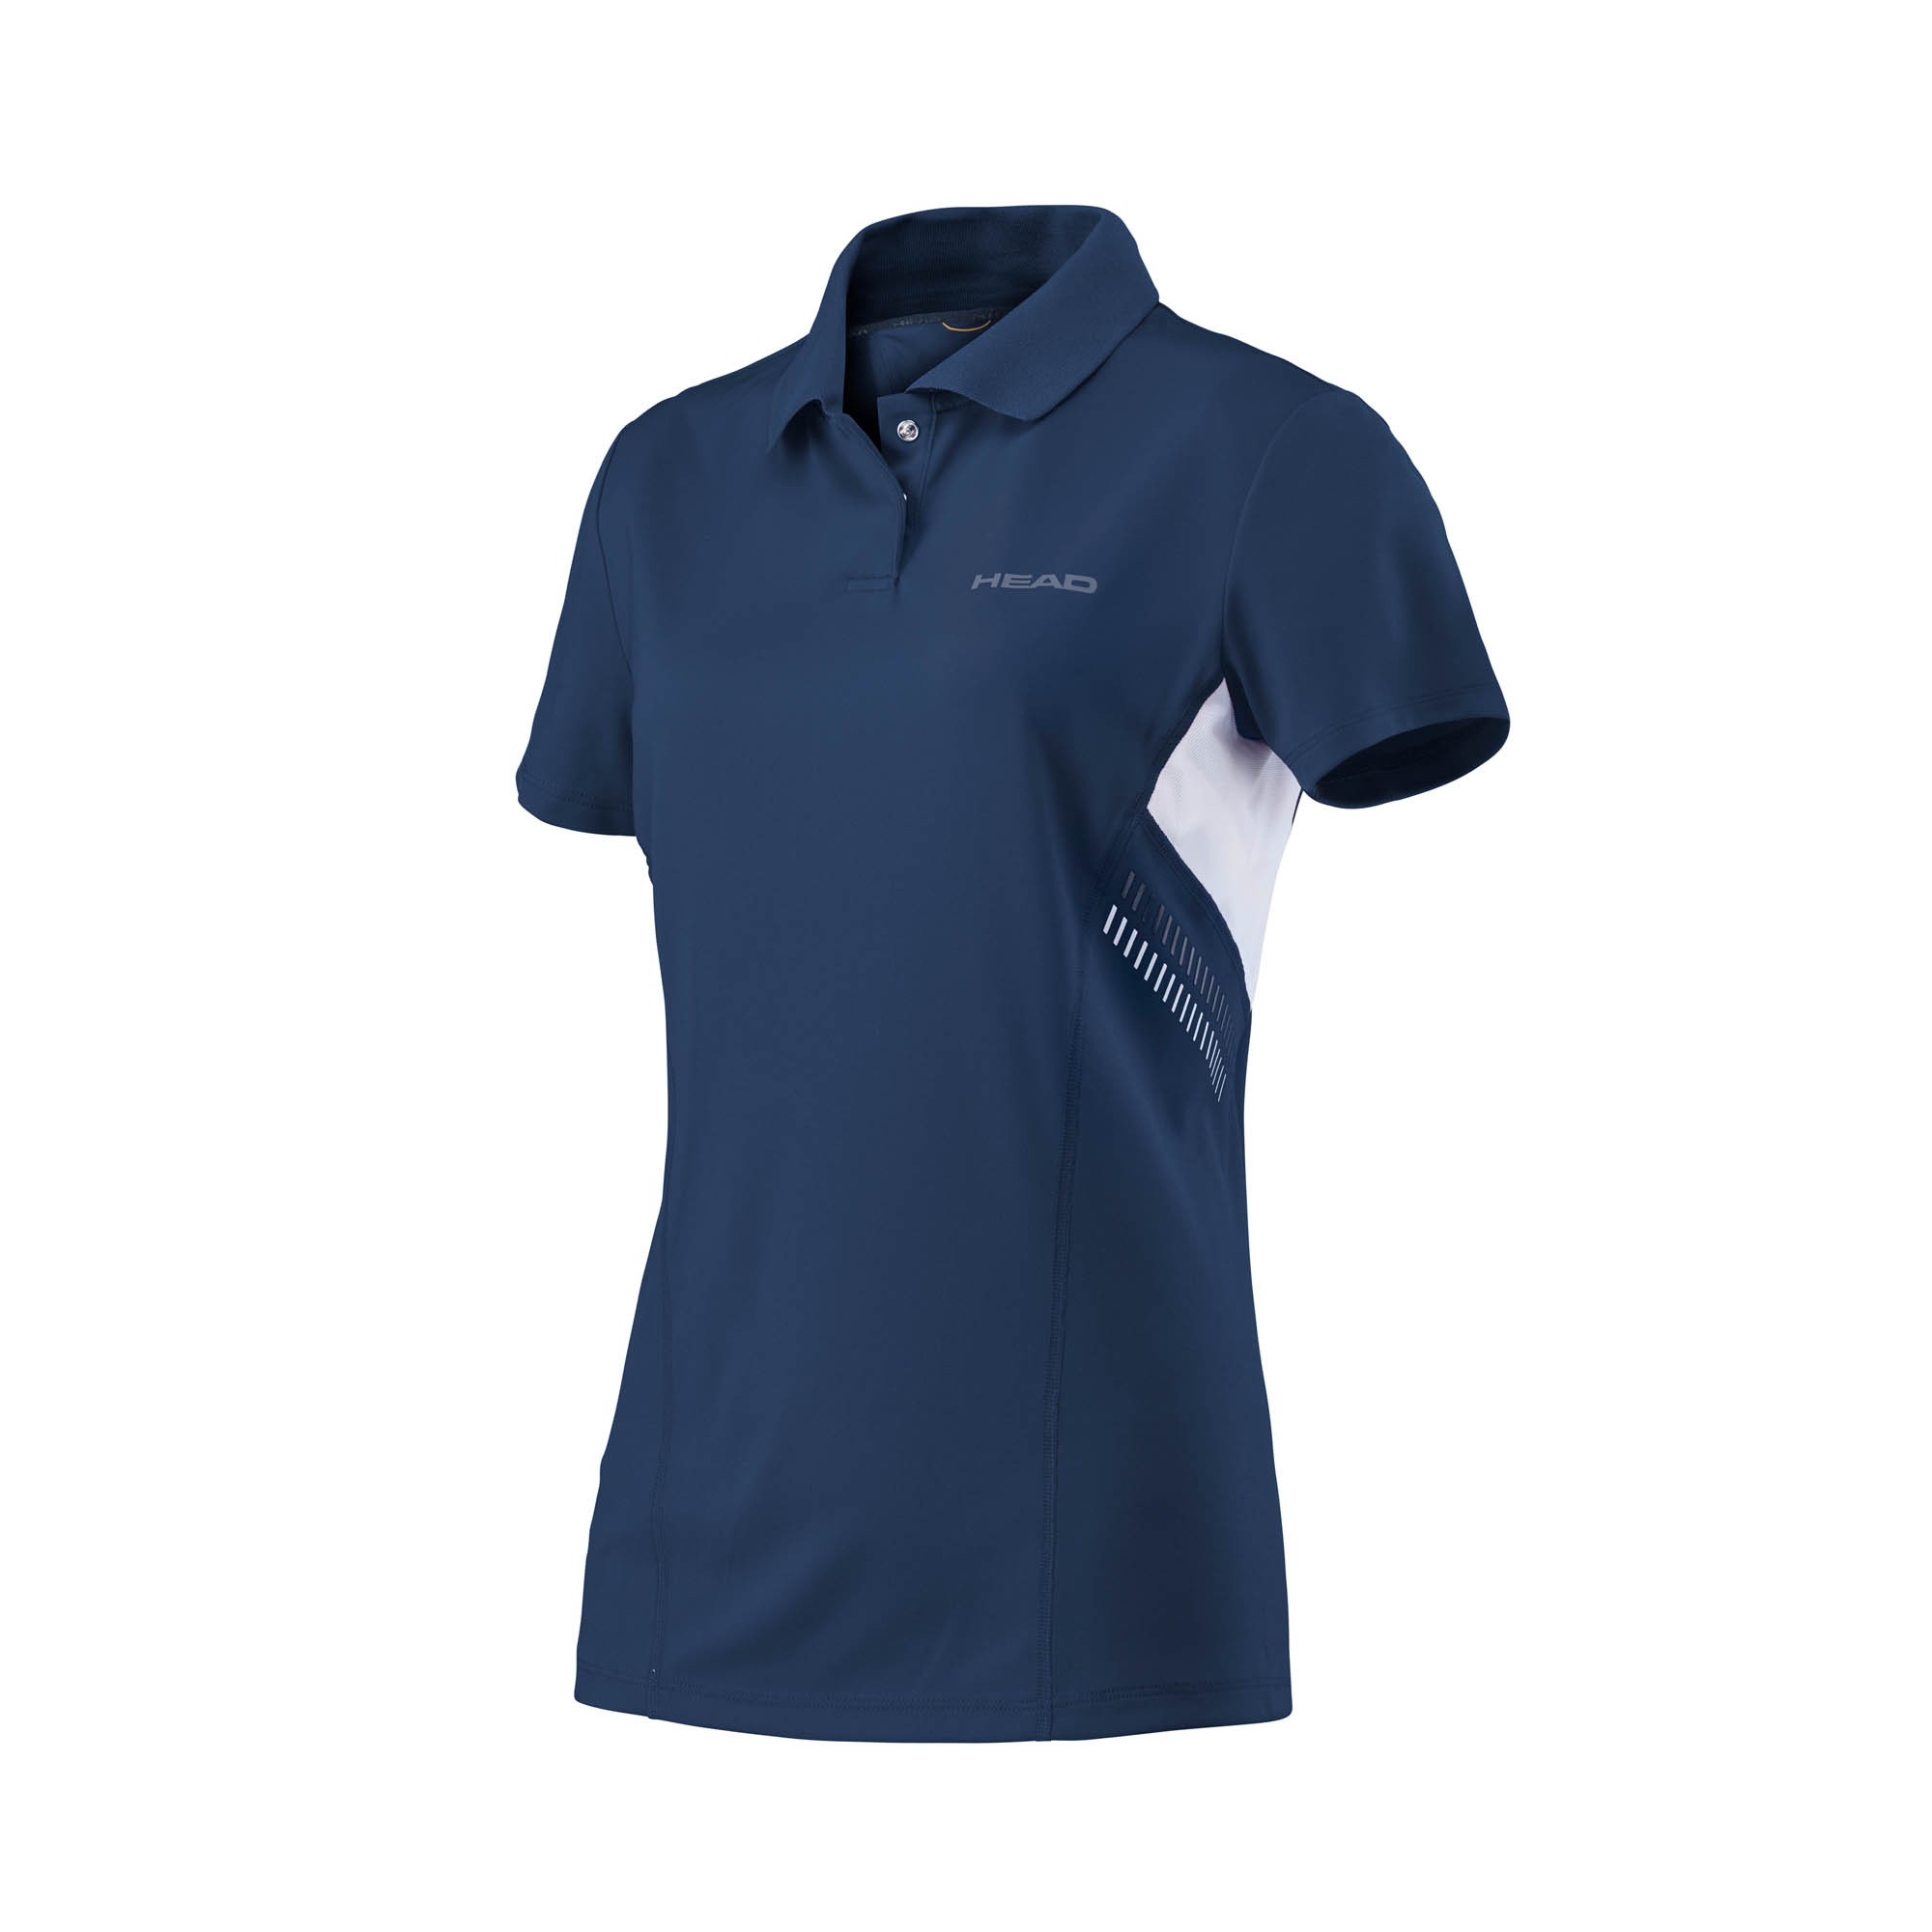 Head Club Technical Girls Polo Shirt - Navy, XL